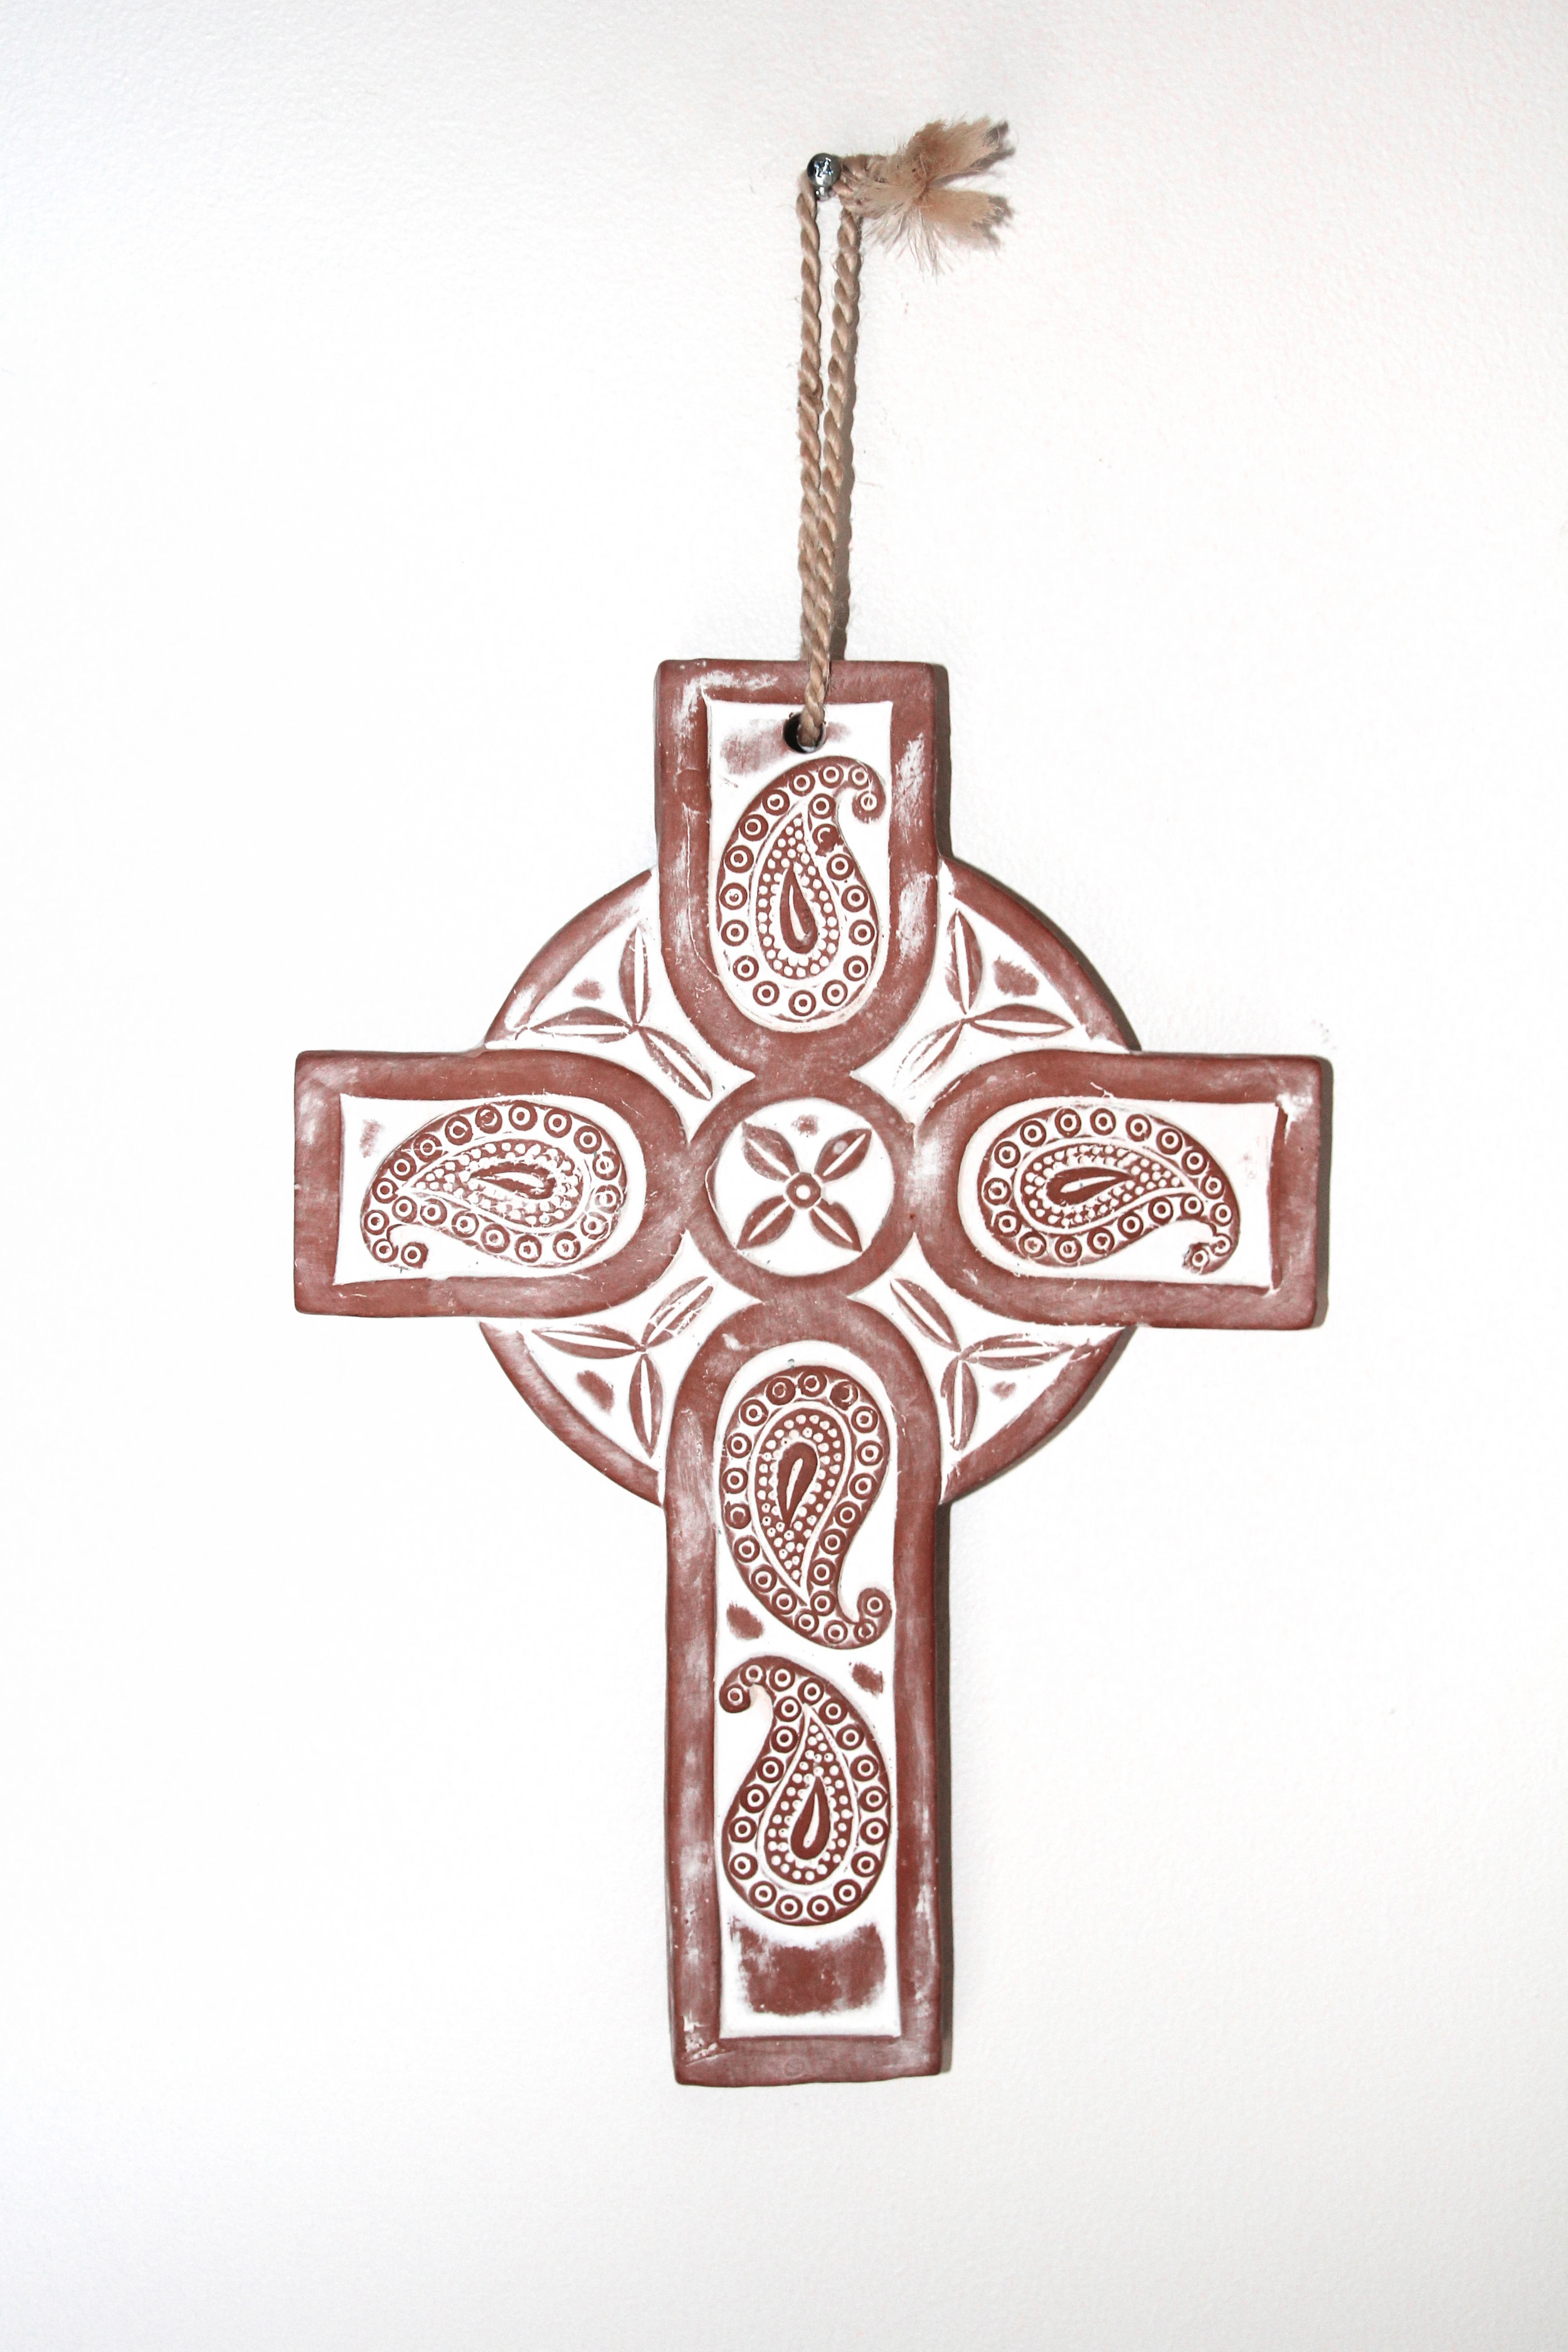 Fair trade cross, handmade in Argentina